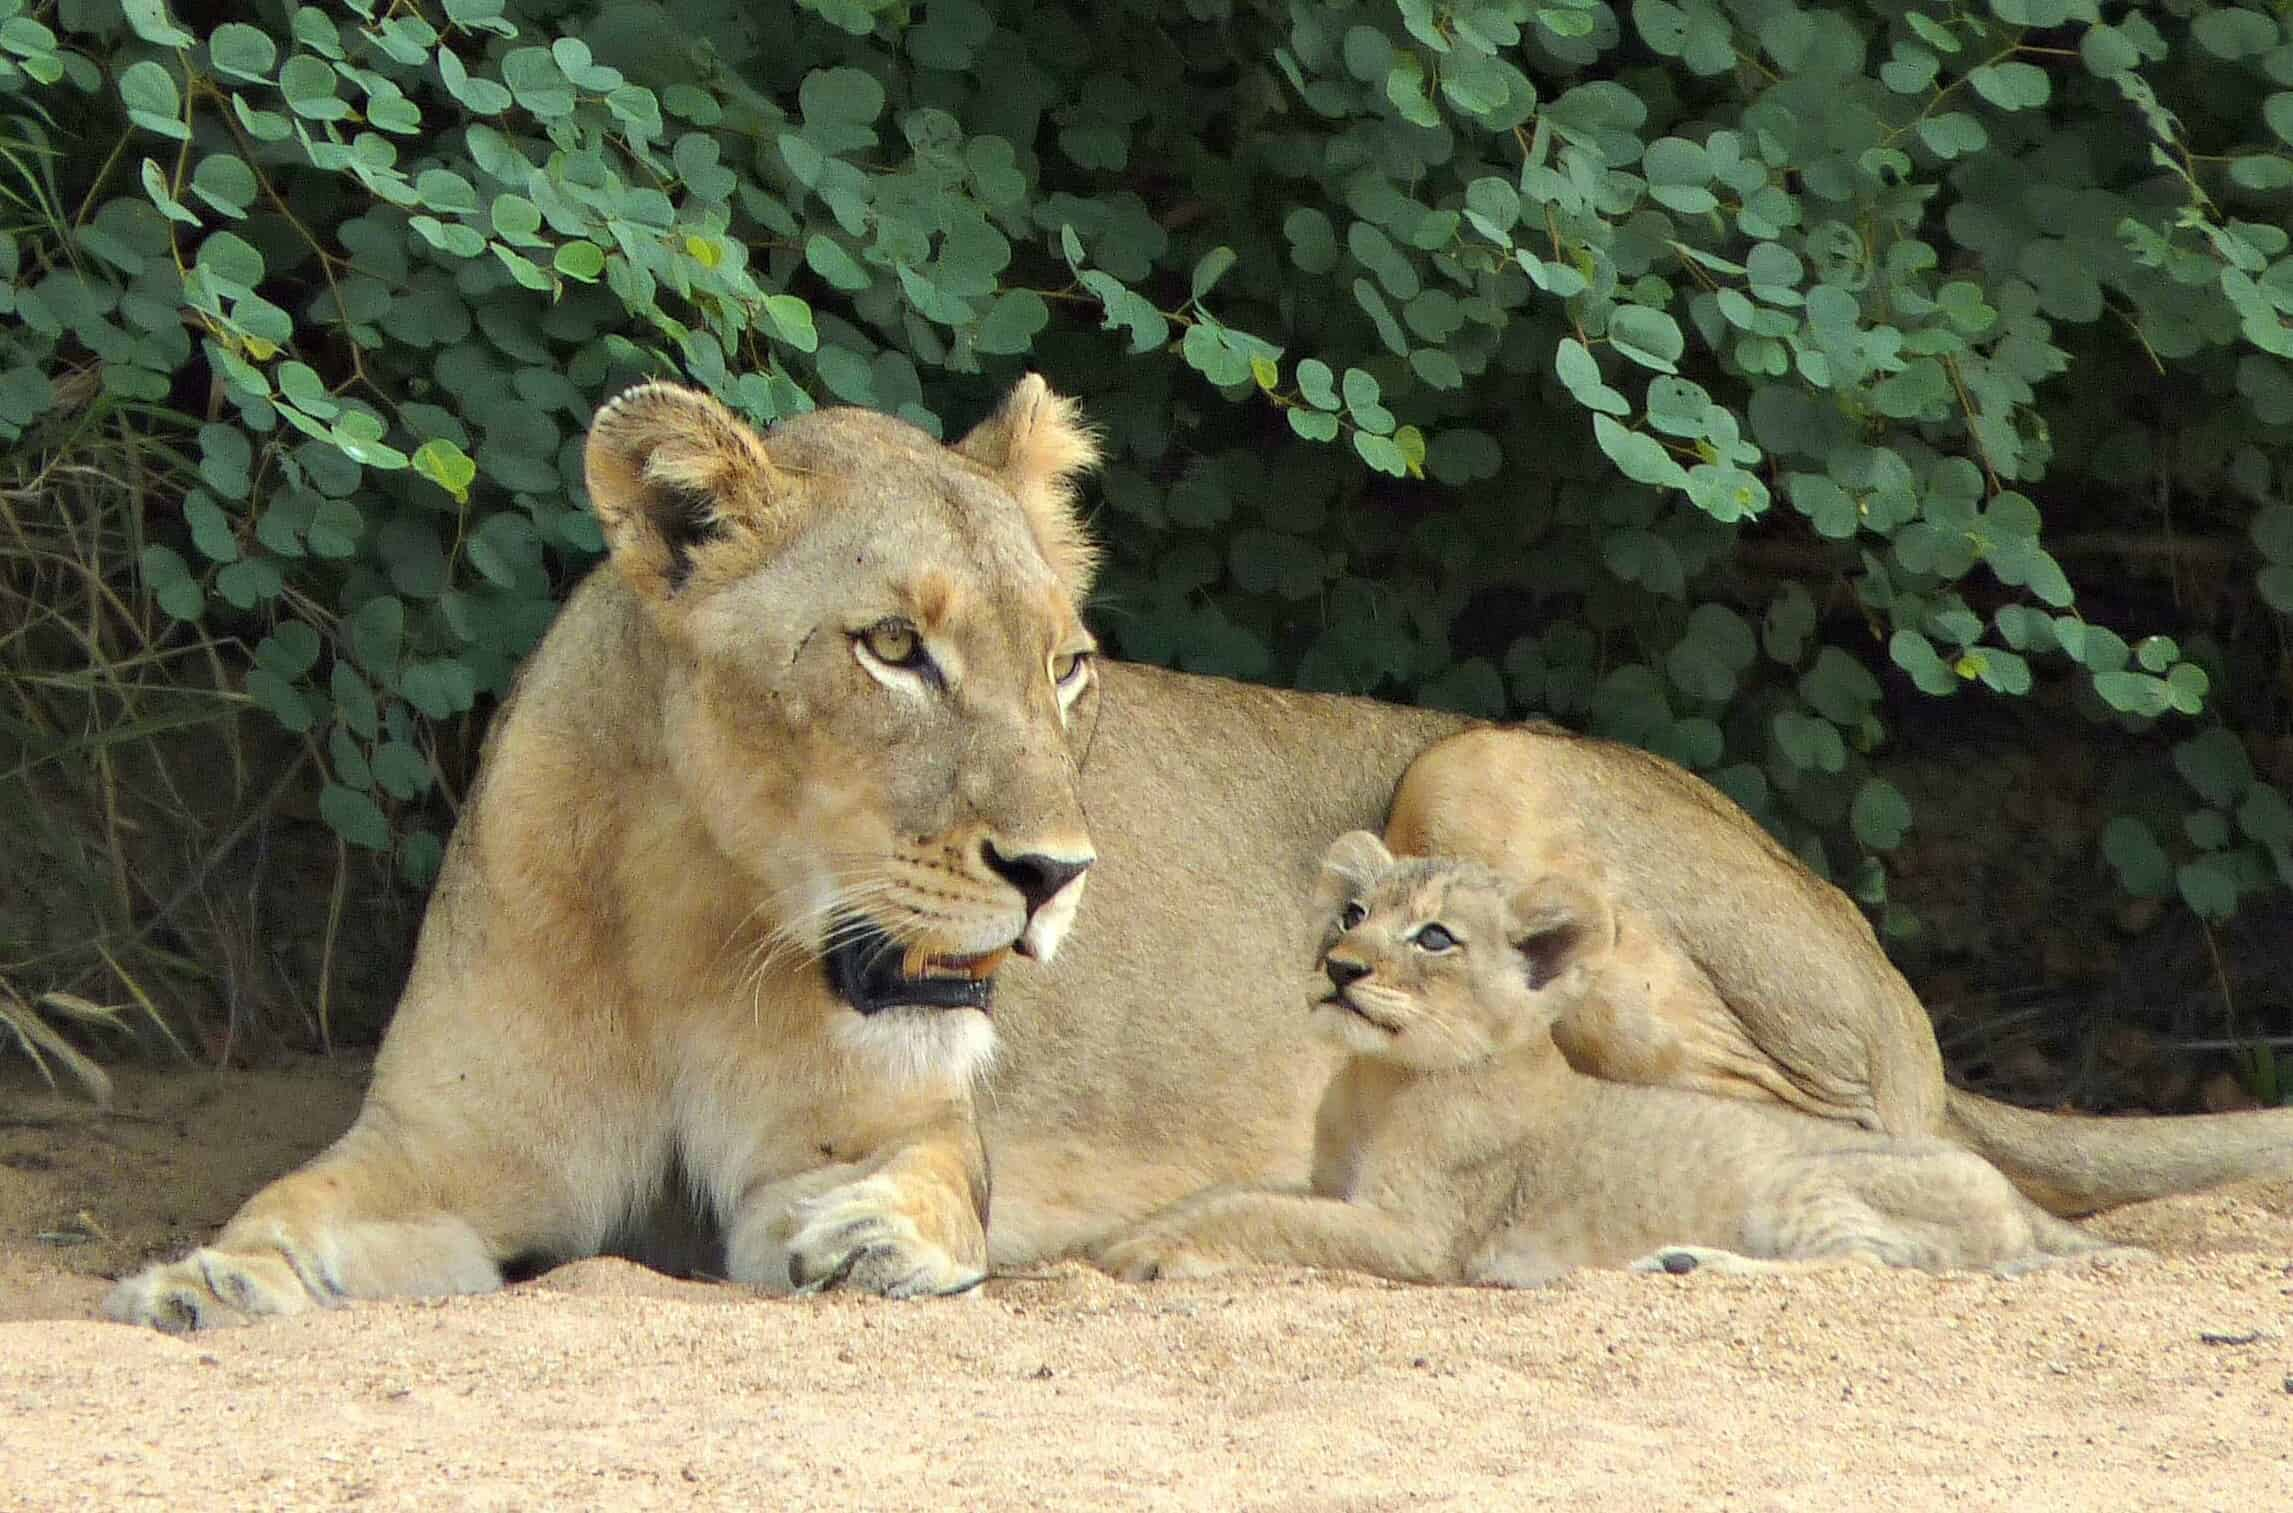 Lion & Cub, Kruger National Park